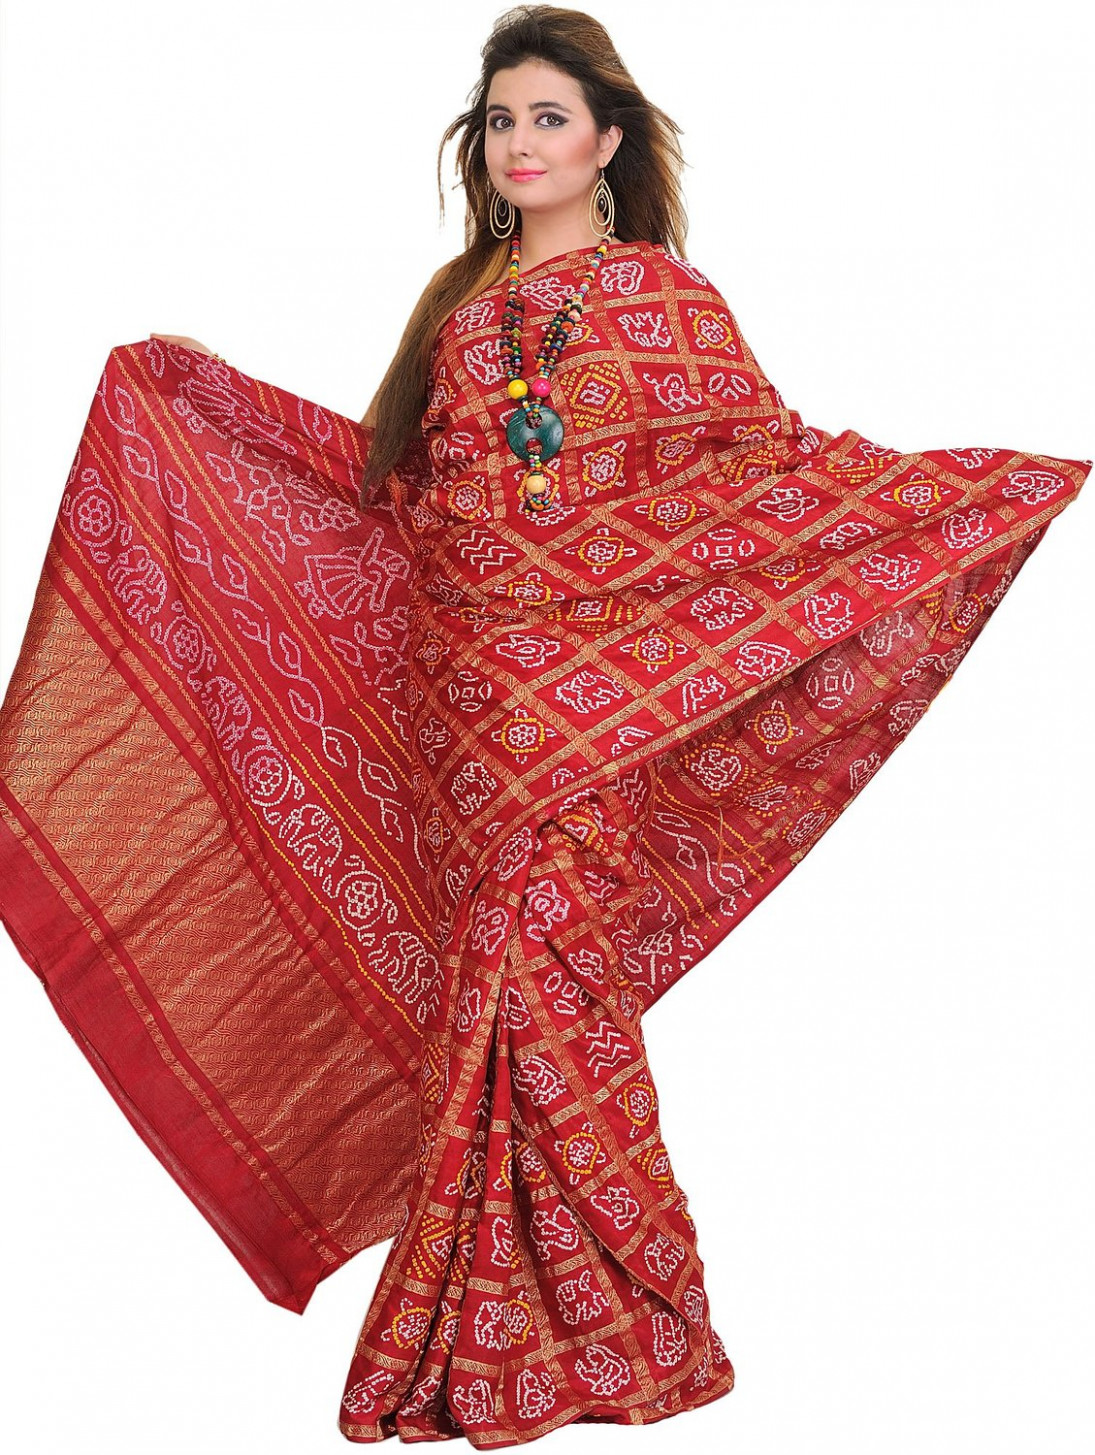 Saree Market: Bandhani Saree Red Colour